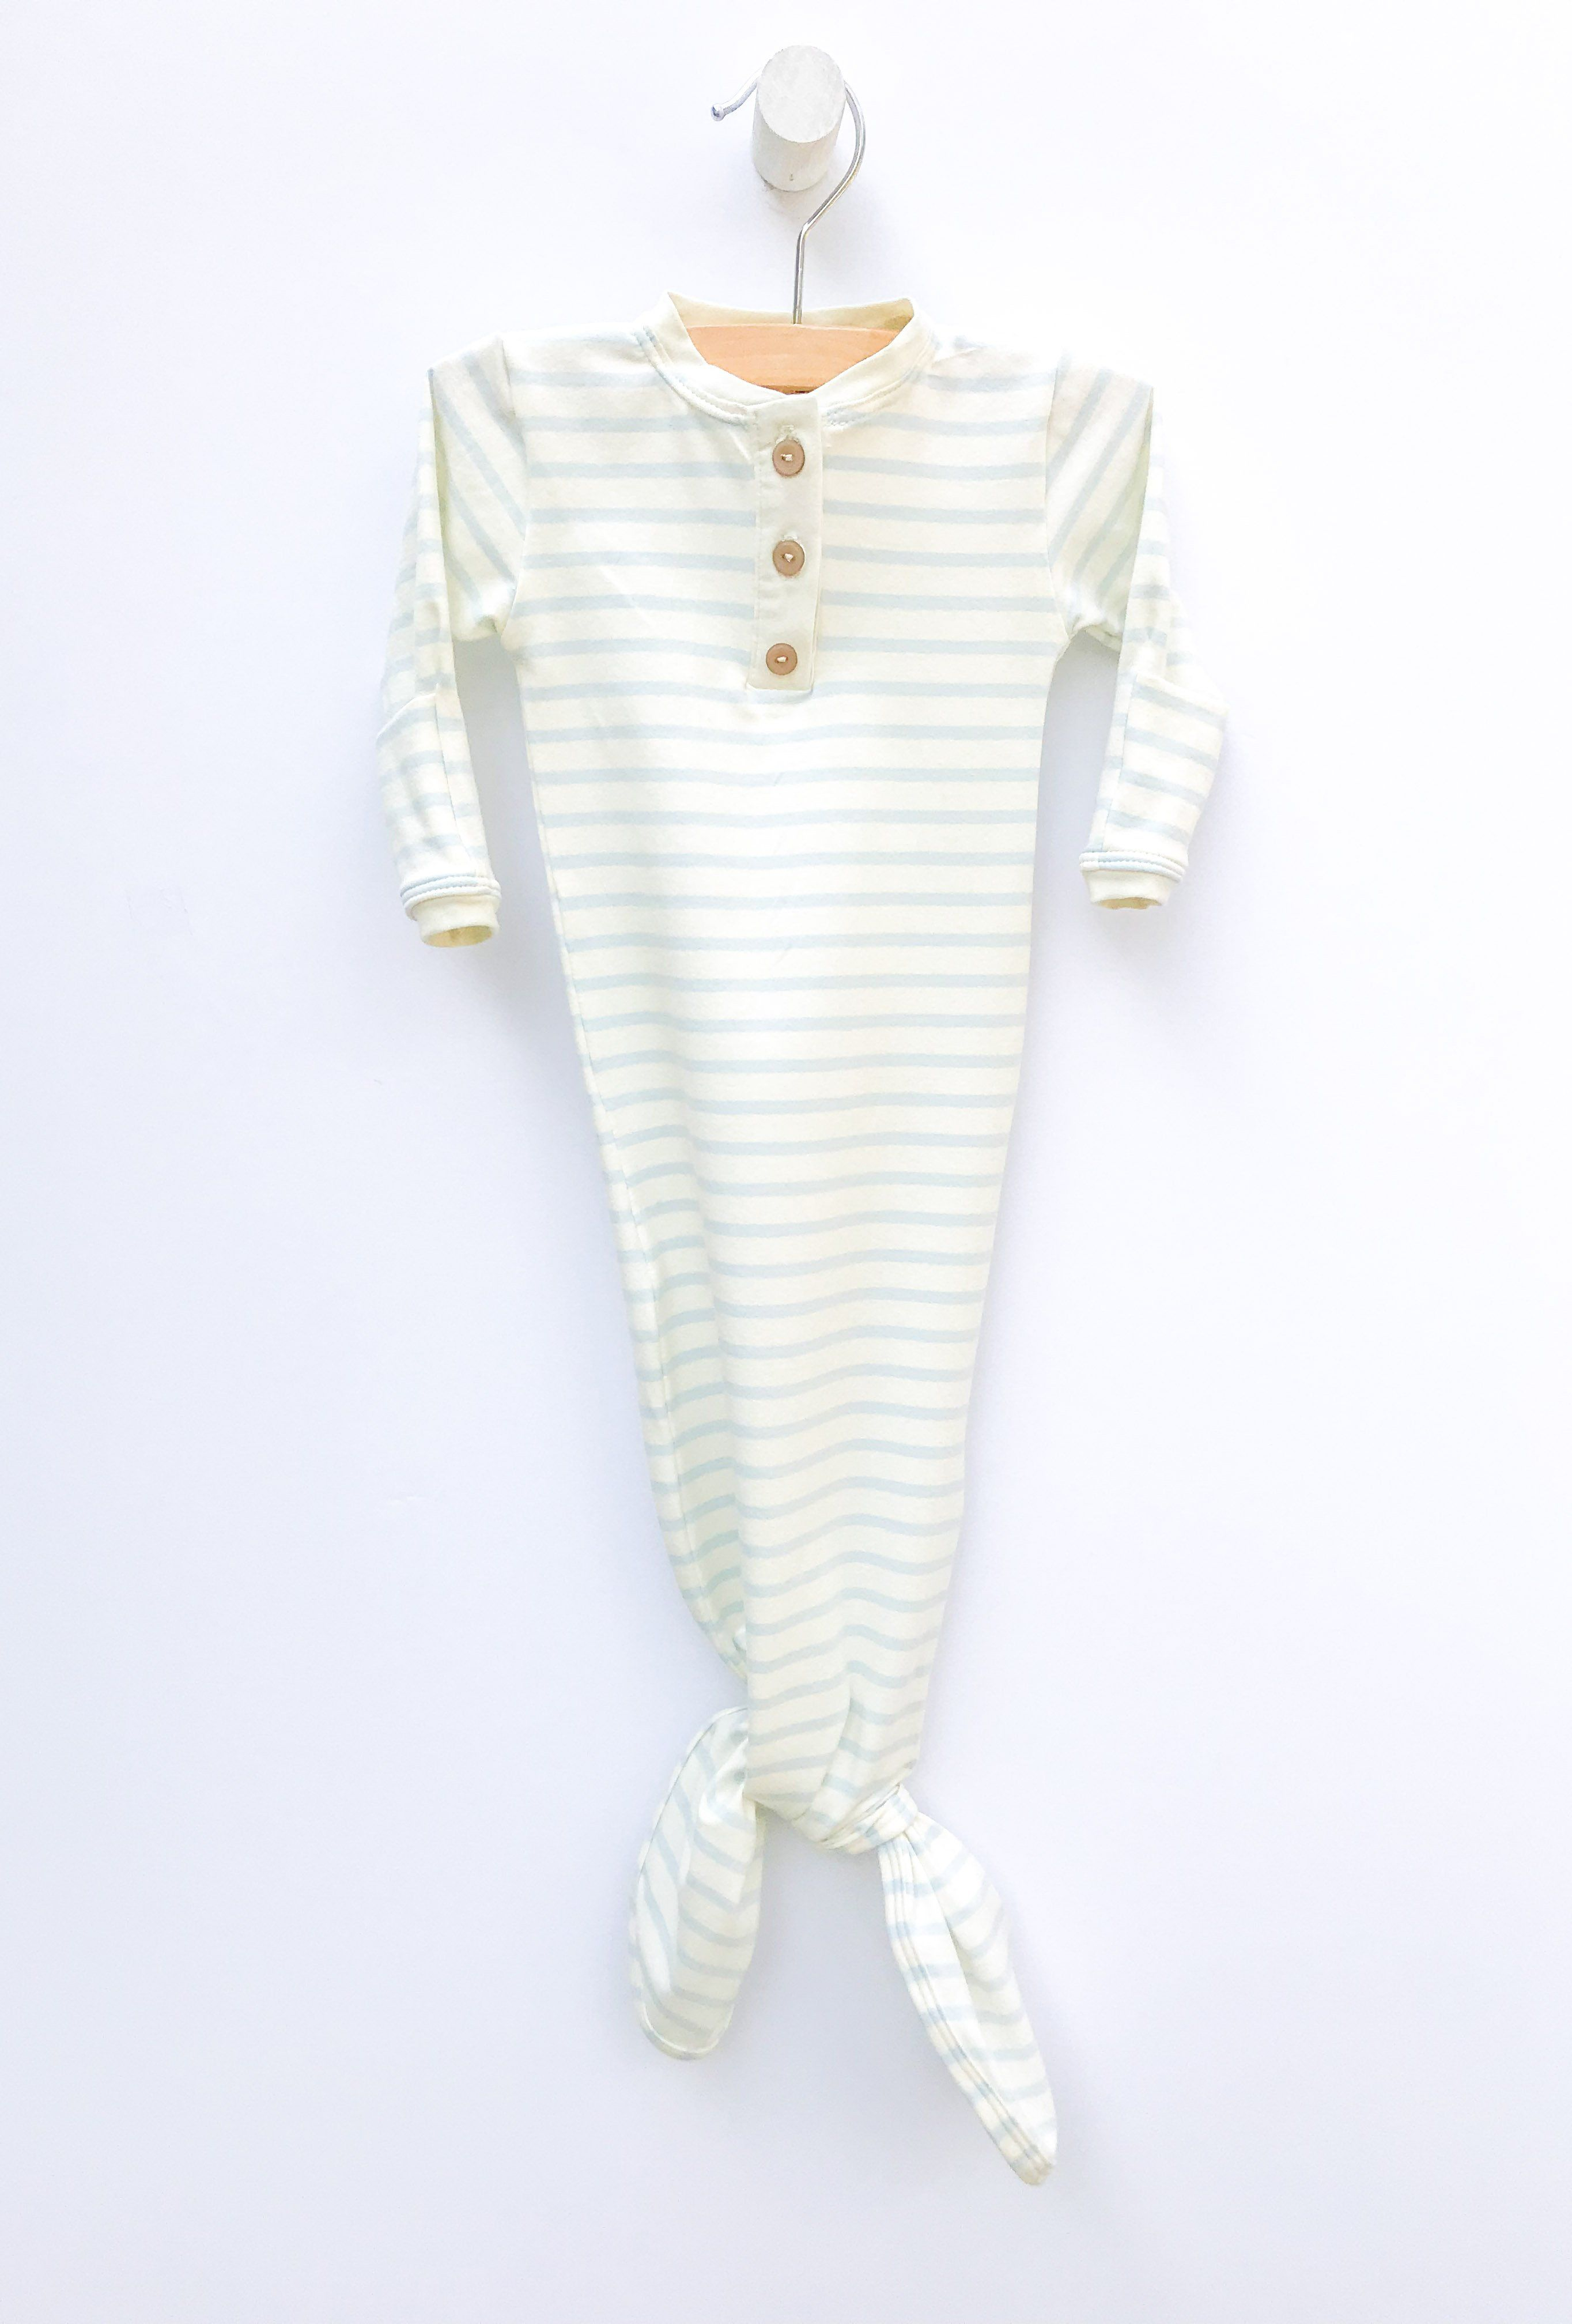 Blue Stripe Sleep Gown - Project Nursery